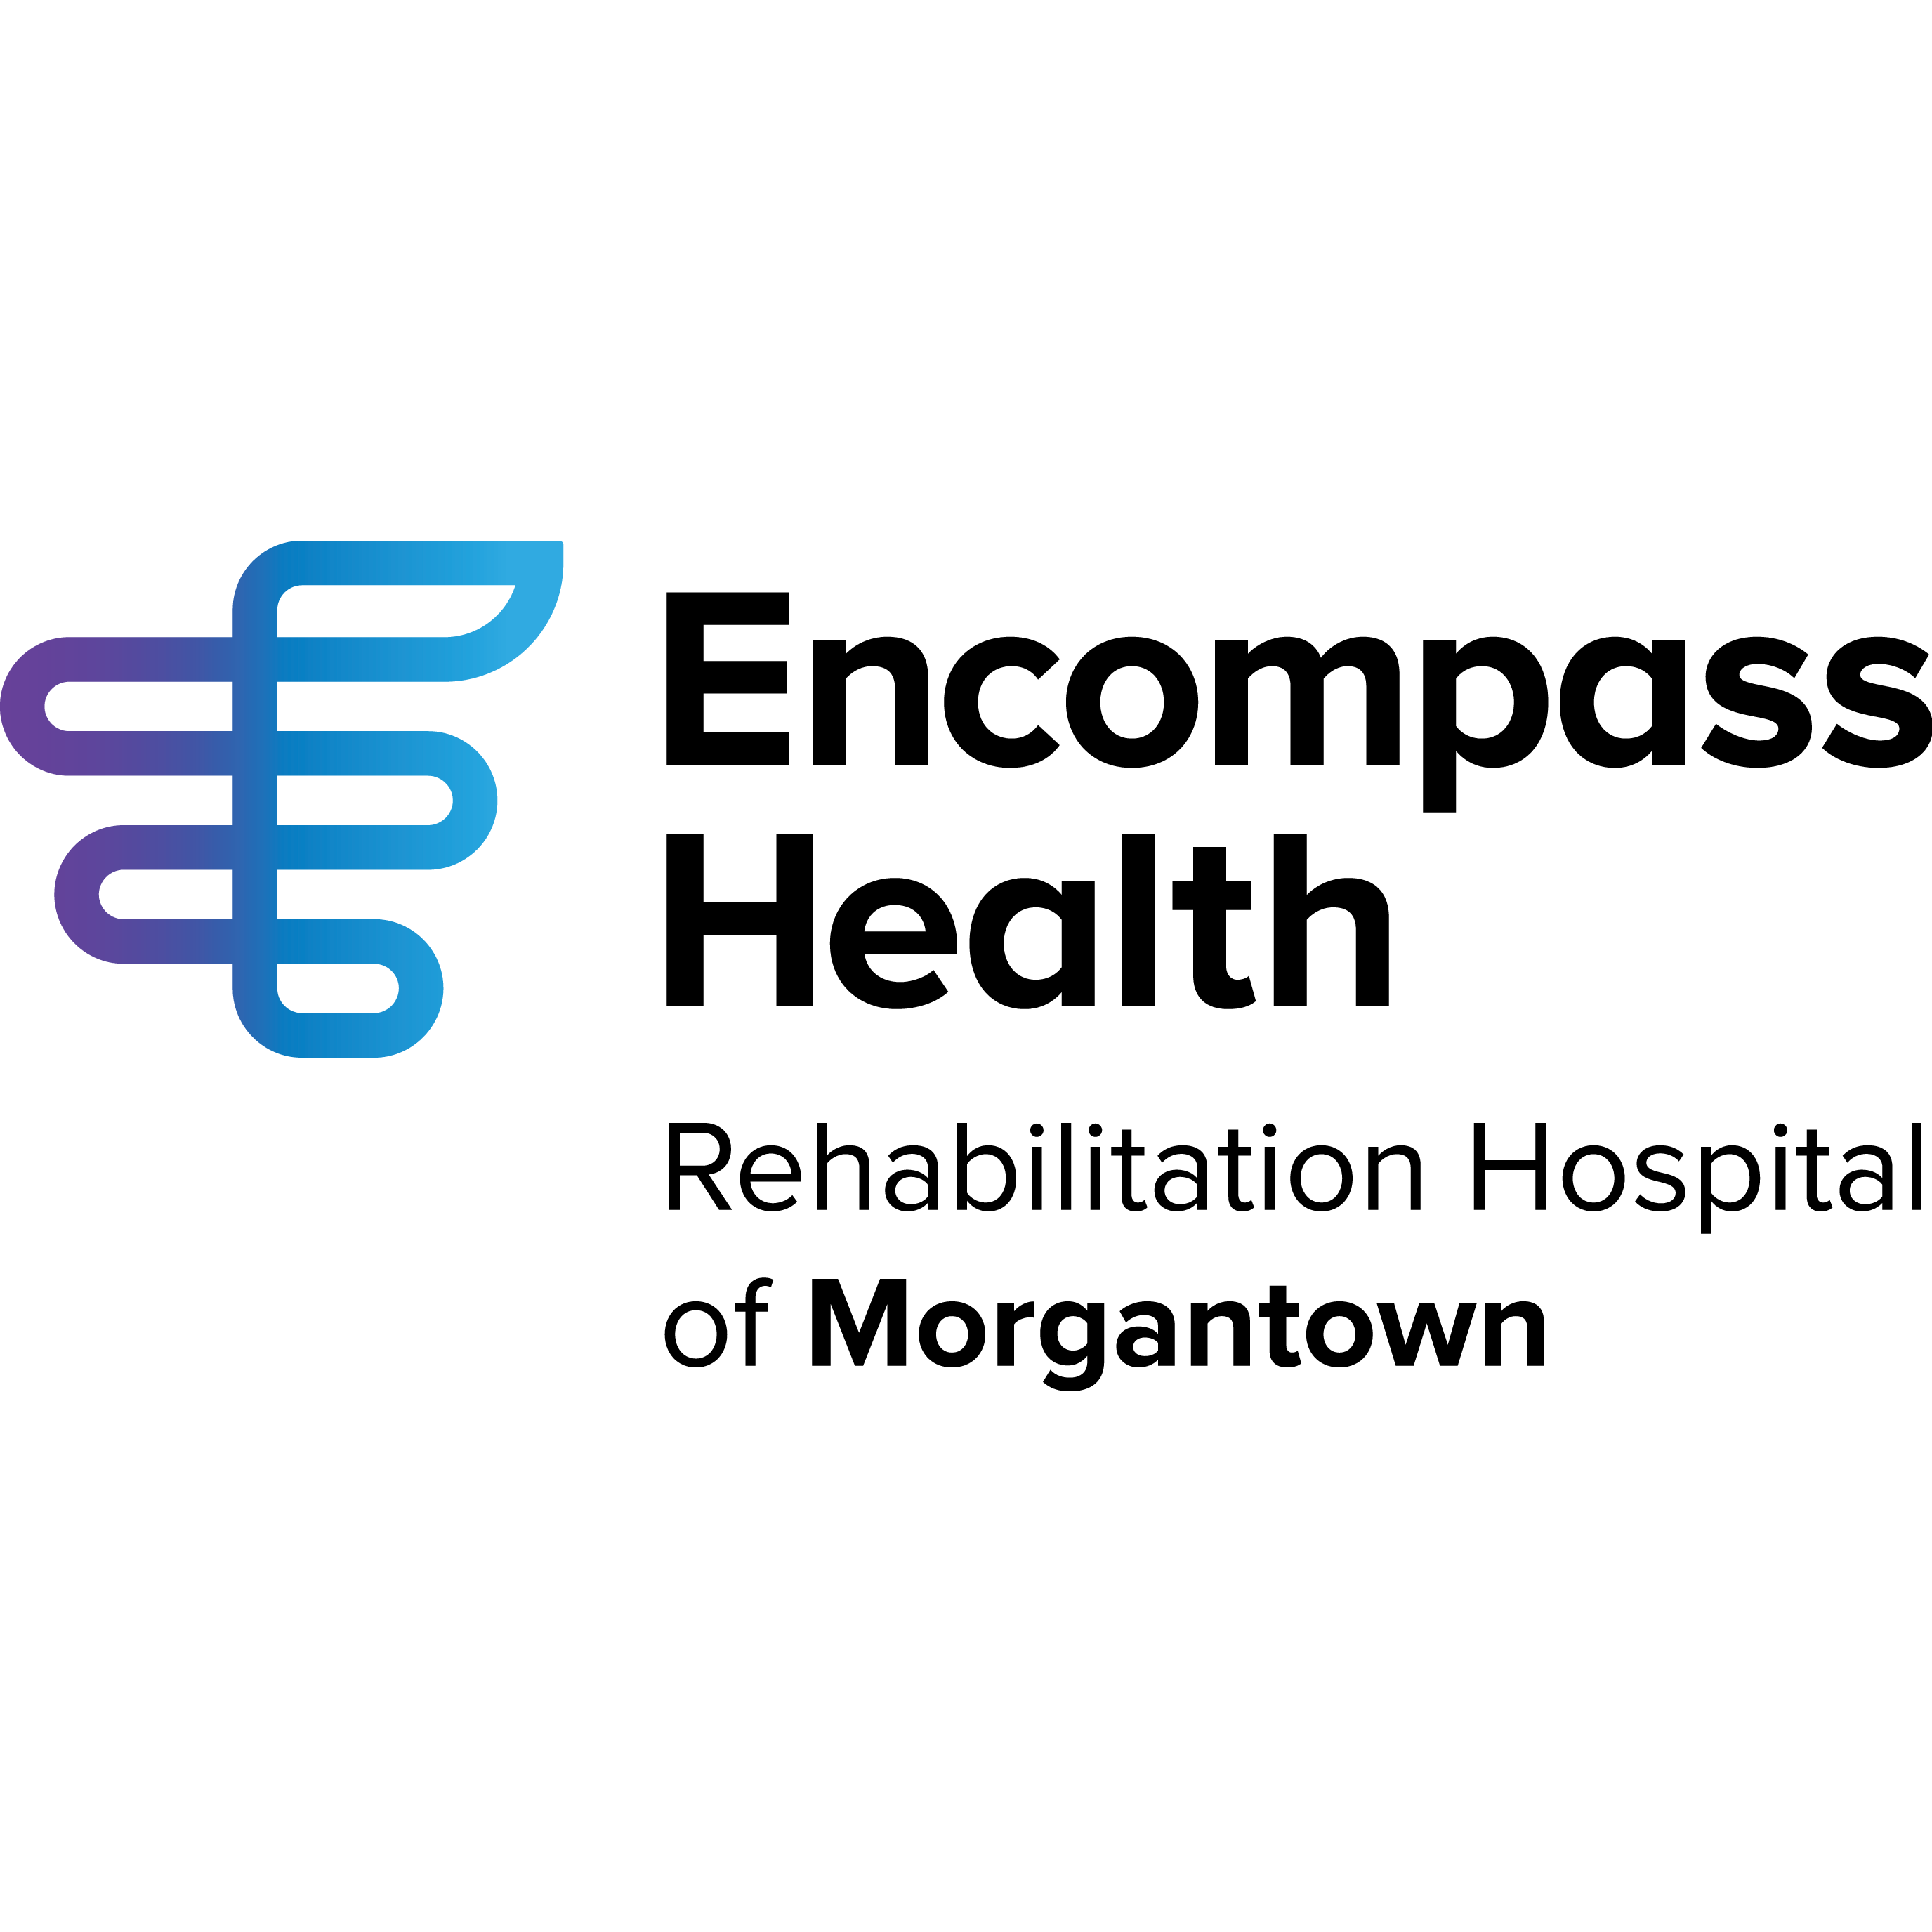 Encompass Health Rehabilitation Hospital of Morgantown image 1